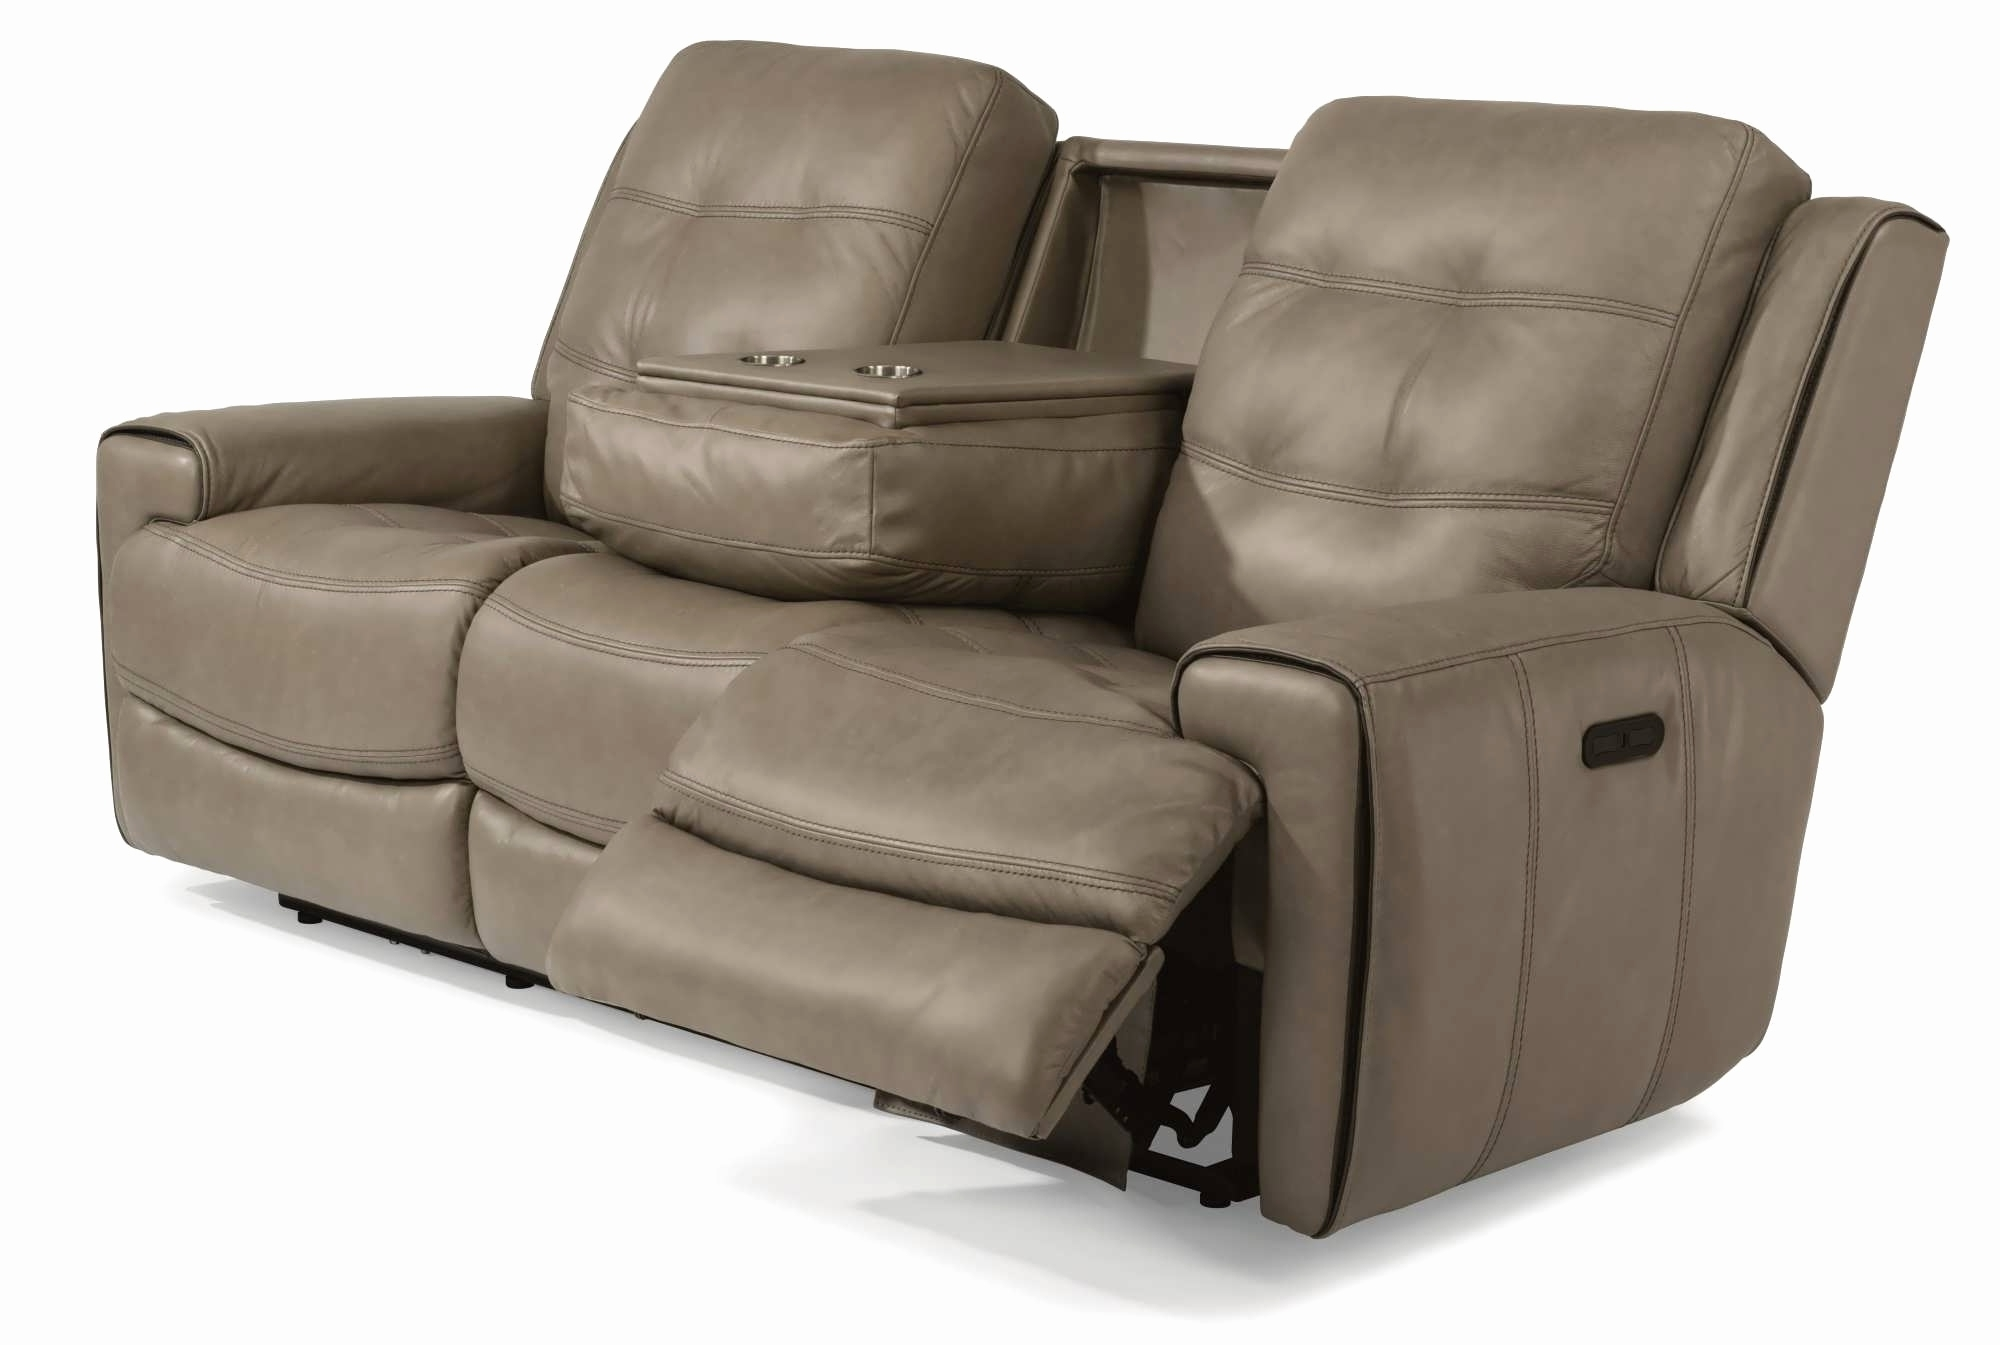 Unique Small Lazy Boy 2018 – Couches And Sofas Ideas For 2017 Lazy Boy Chaise Lounges (View 13 of 15)